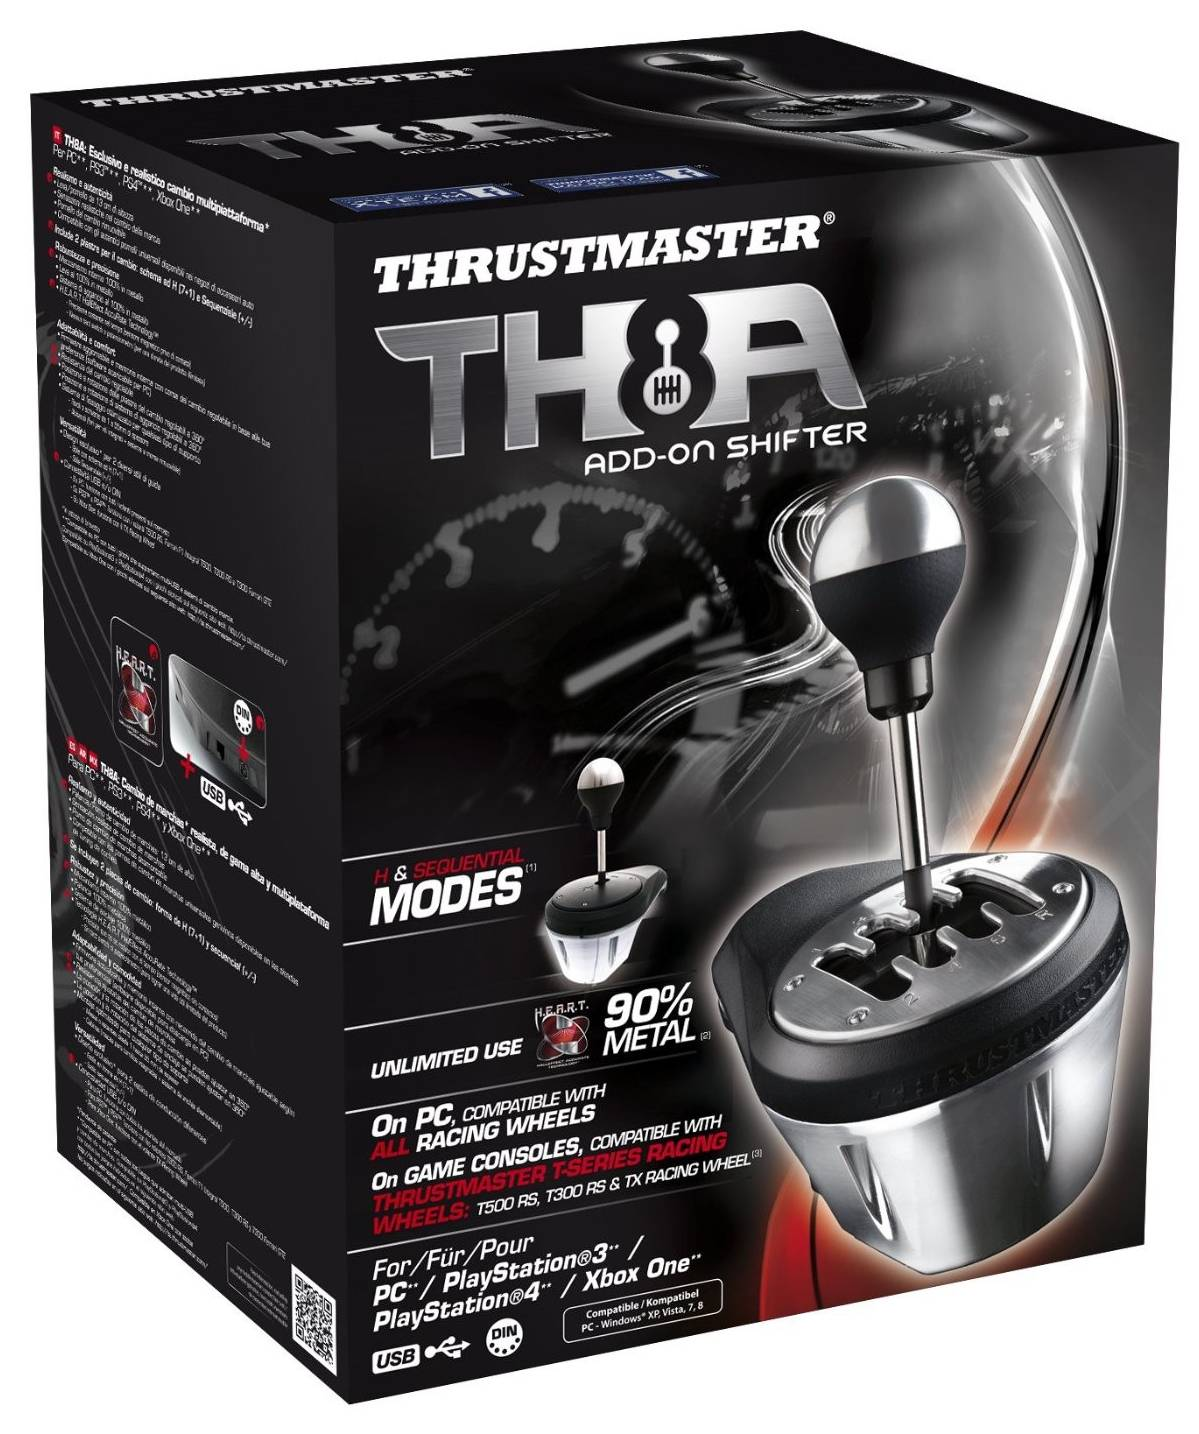 Thrustmaster Pc/ Ps3/ Ps4/ Xbox One